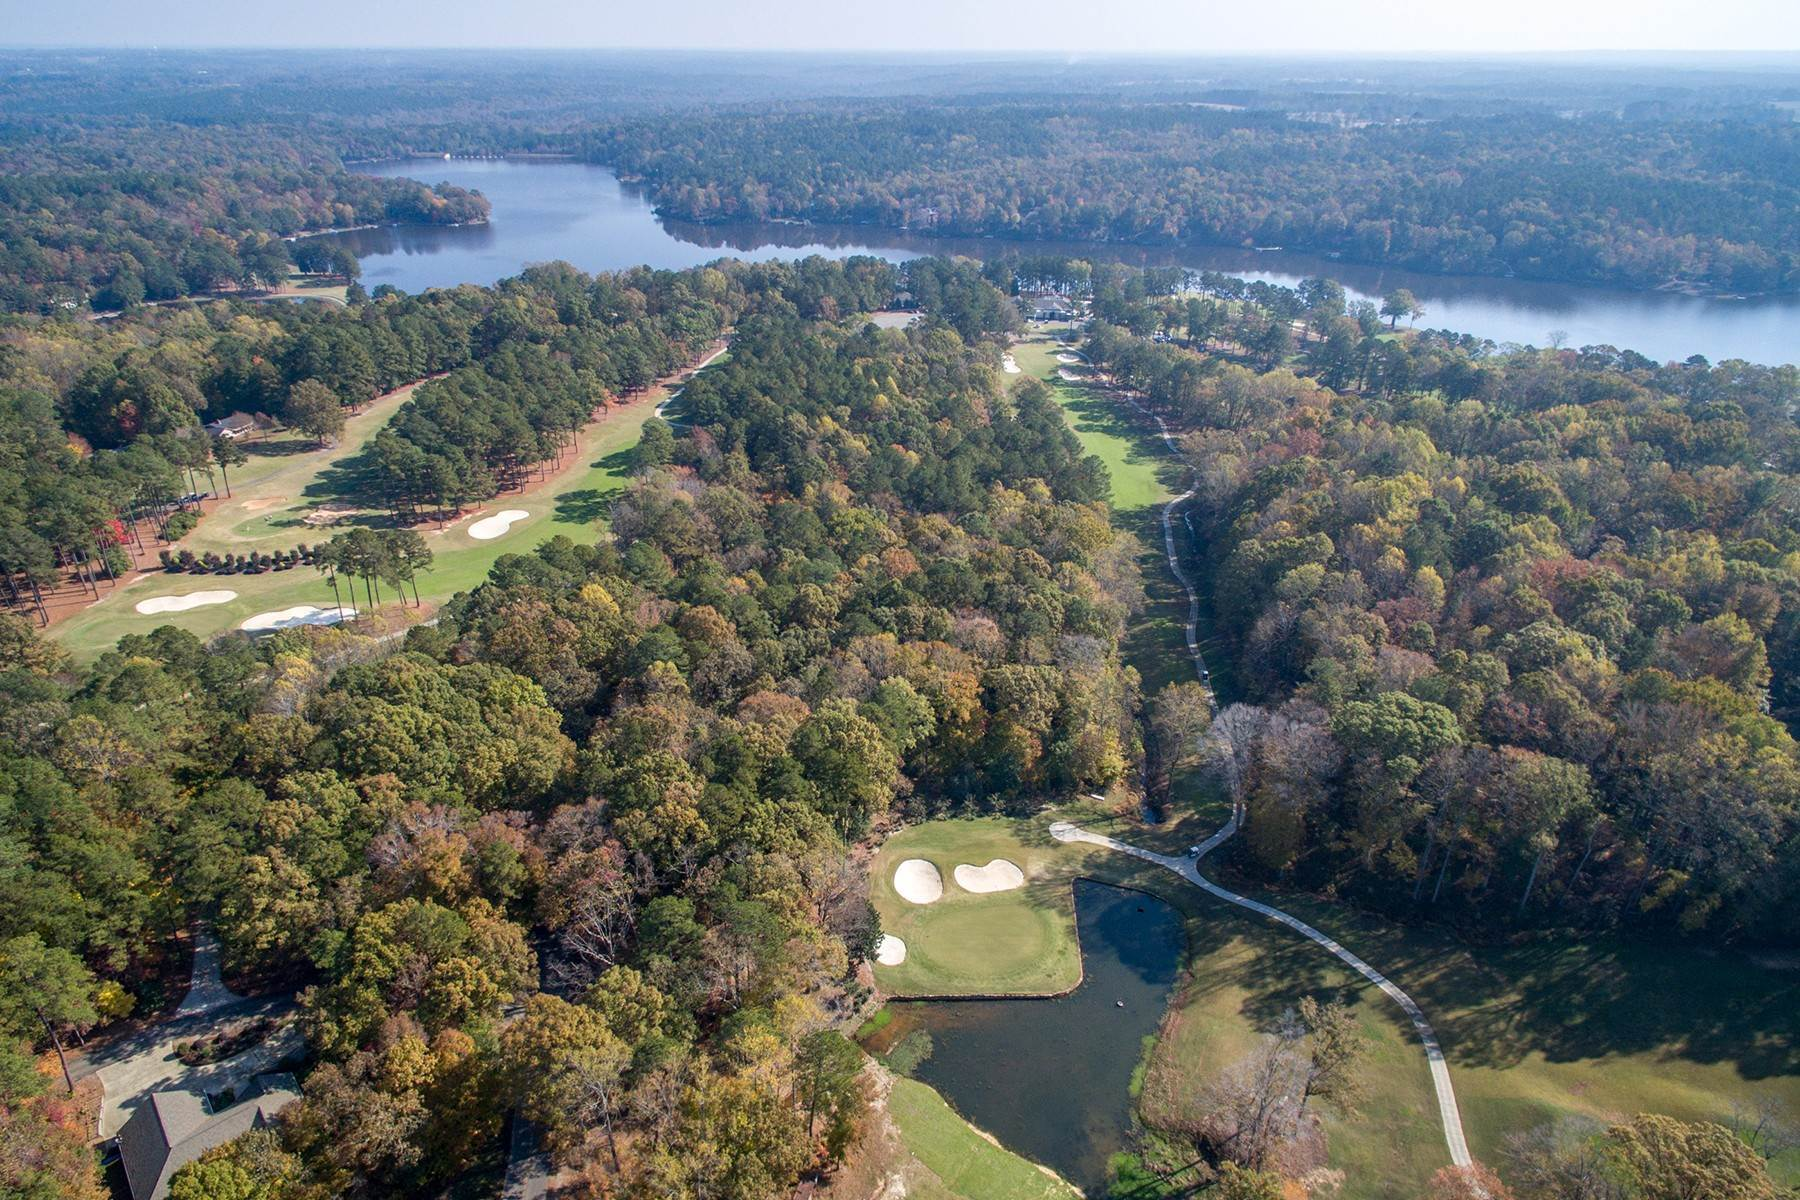 Land at Village at the Trace 9999 Country Club Drive Sanford, North Carolina 27332 United States